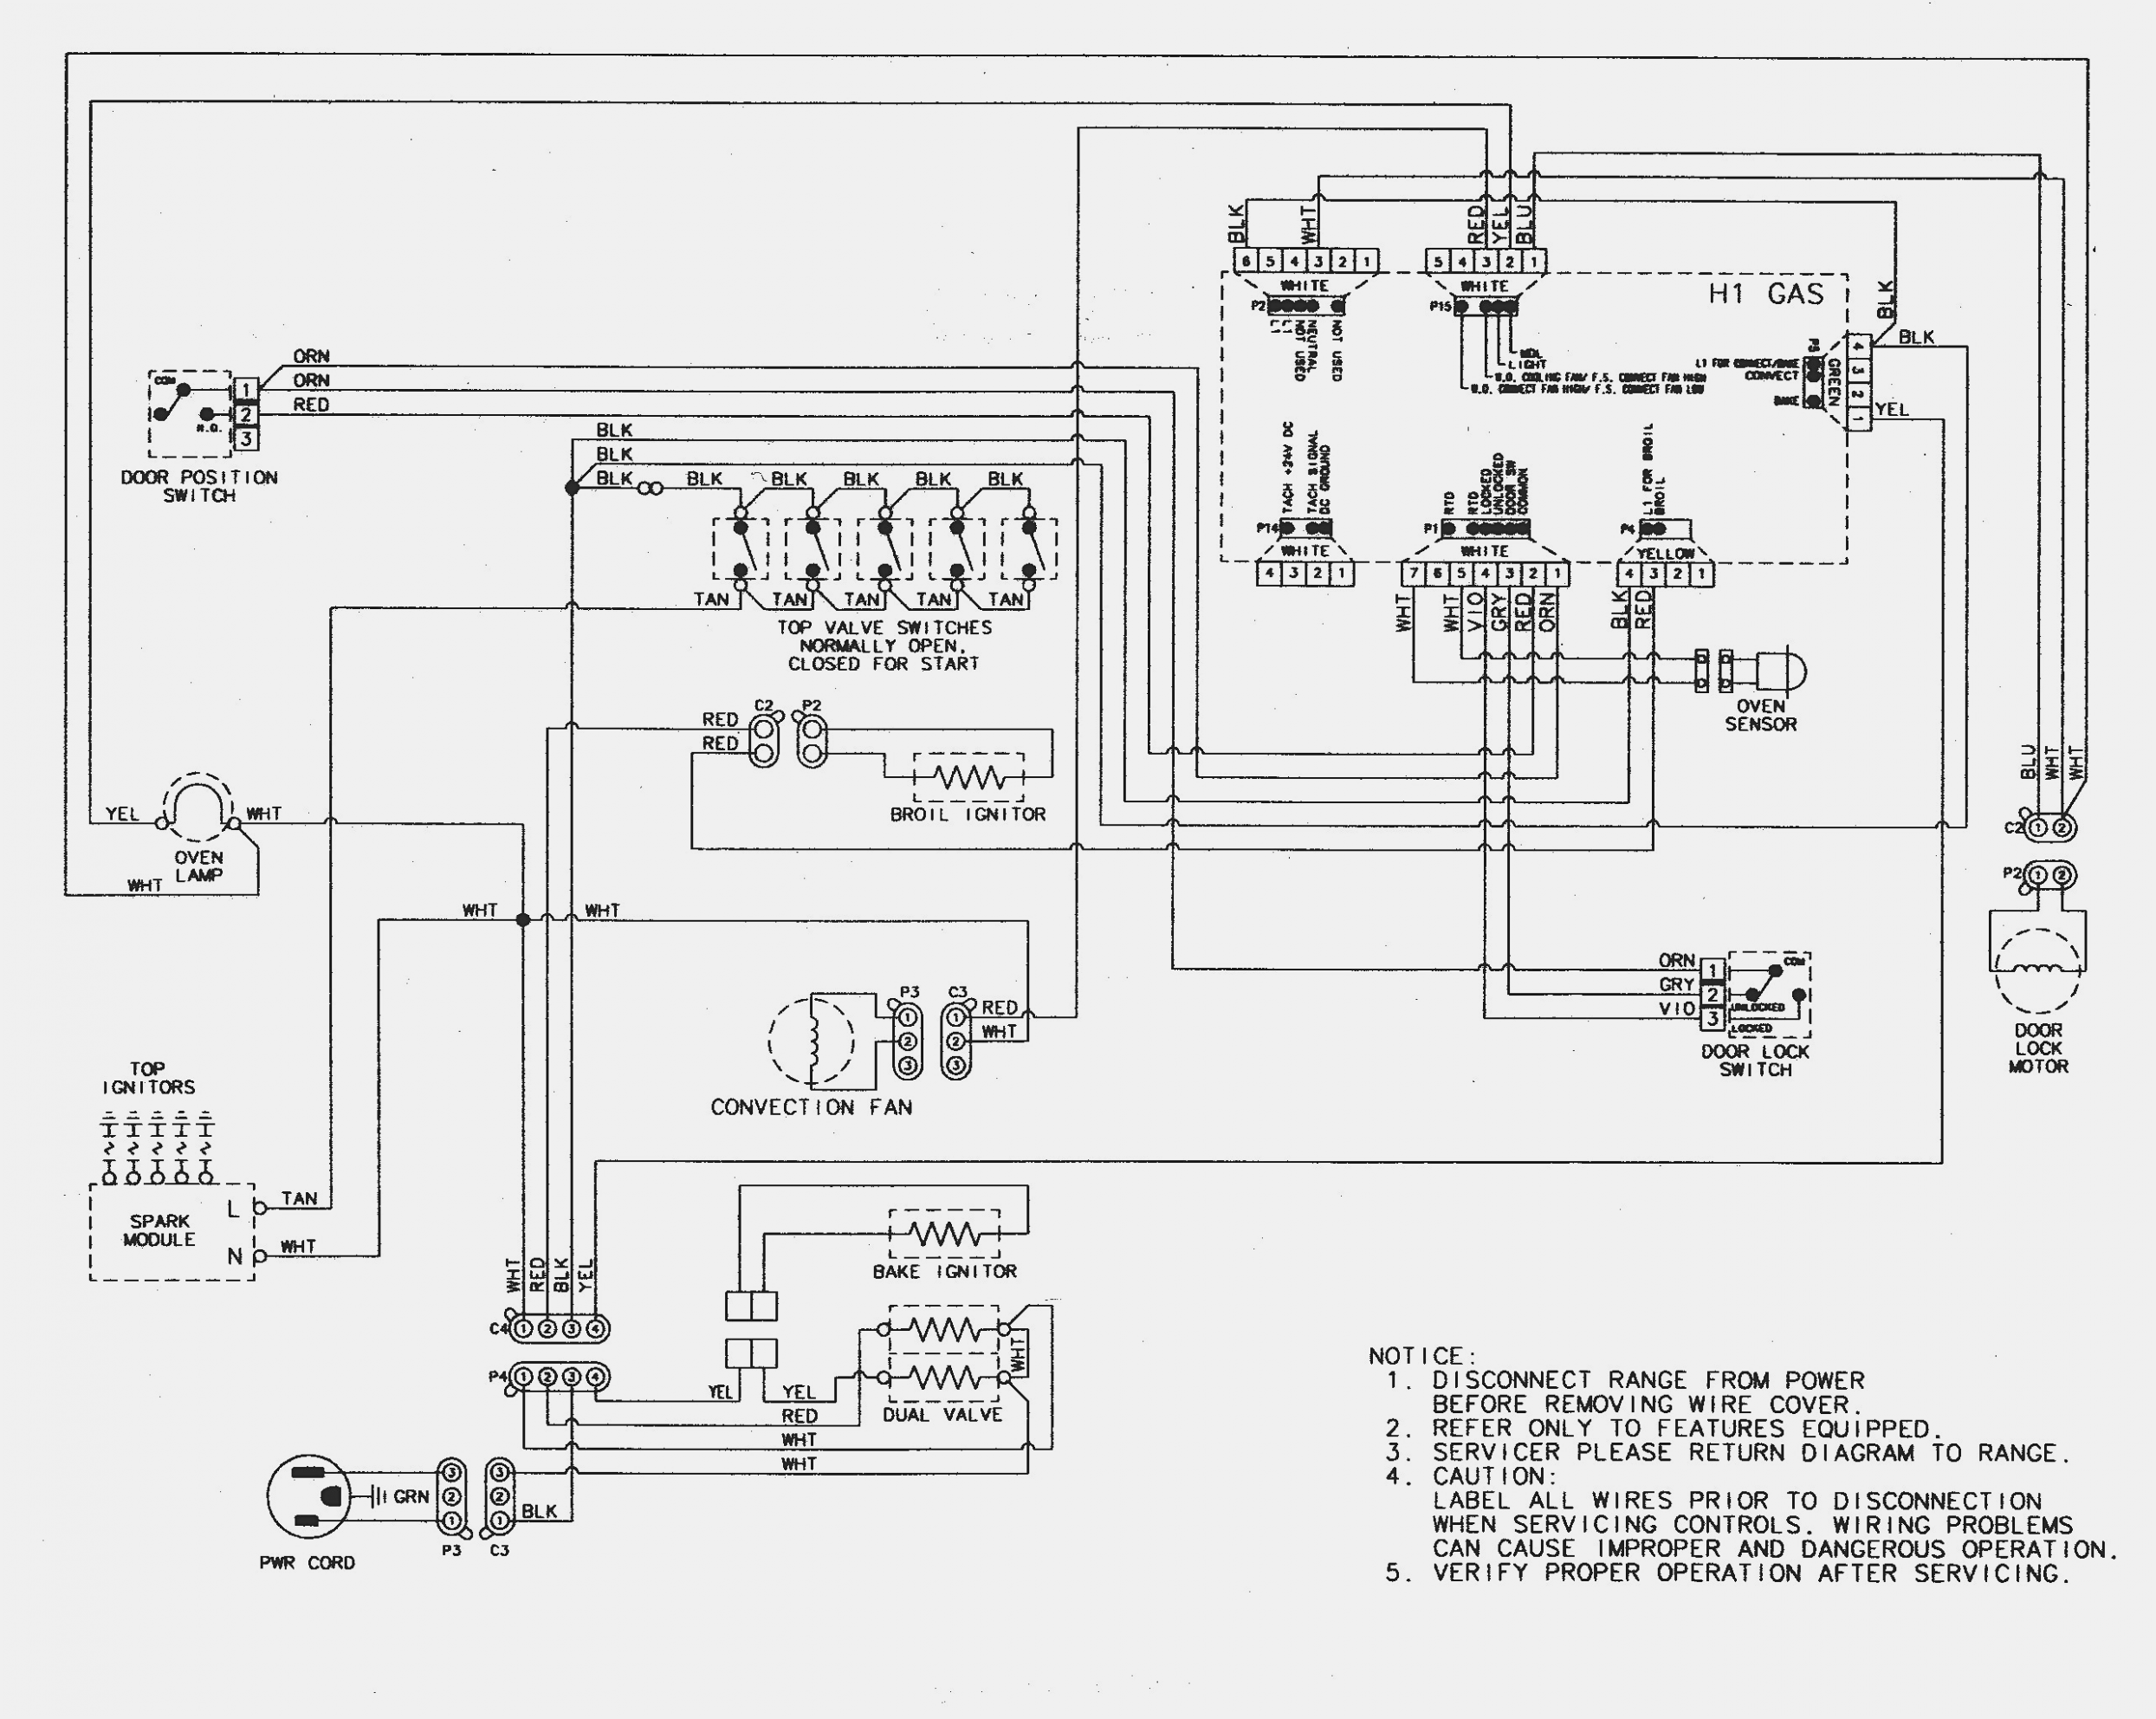 New Electric Ceiling Fan Wiring Diagram Diagram Diagramsample Diagramtemplate Wiringdiagram Diagramchart Work Whirlpool Dryer Diagram Powder Coating Oven